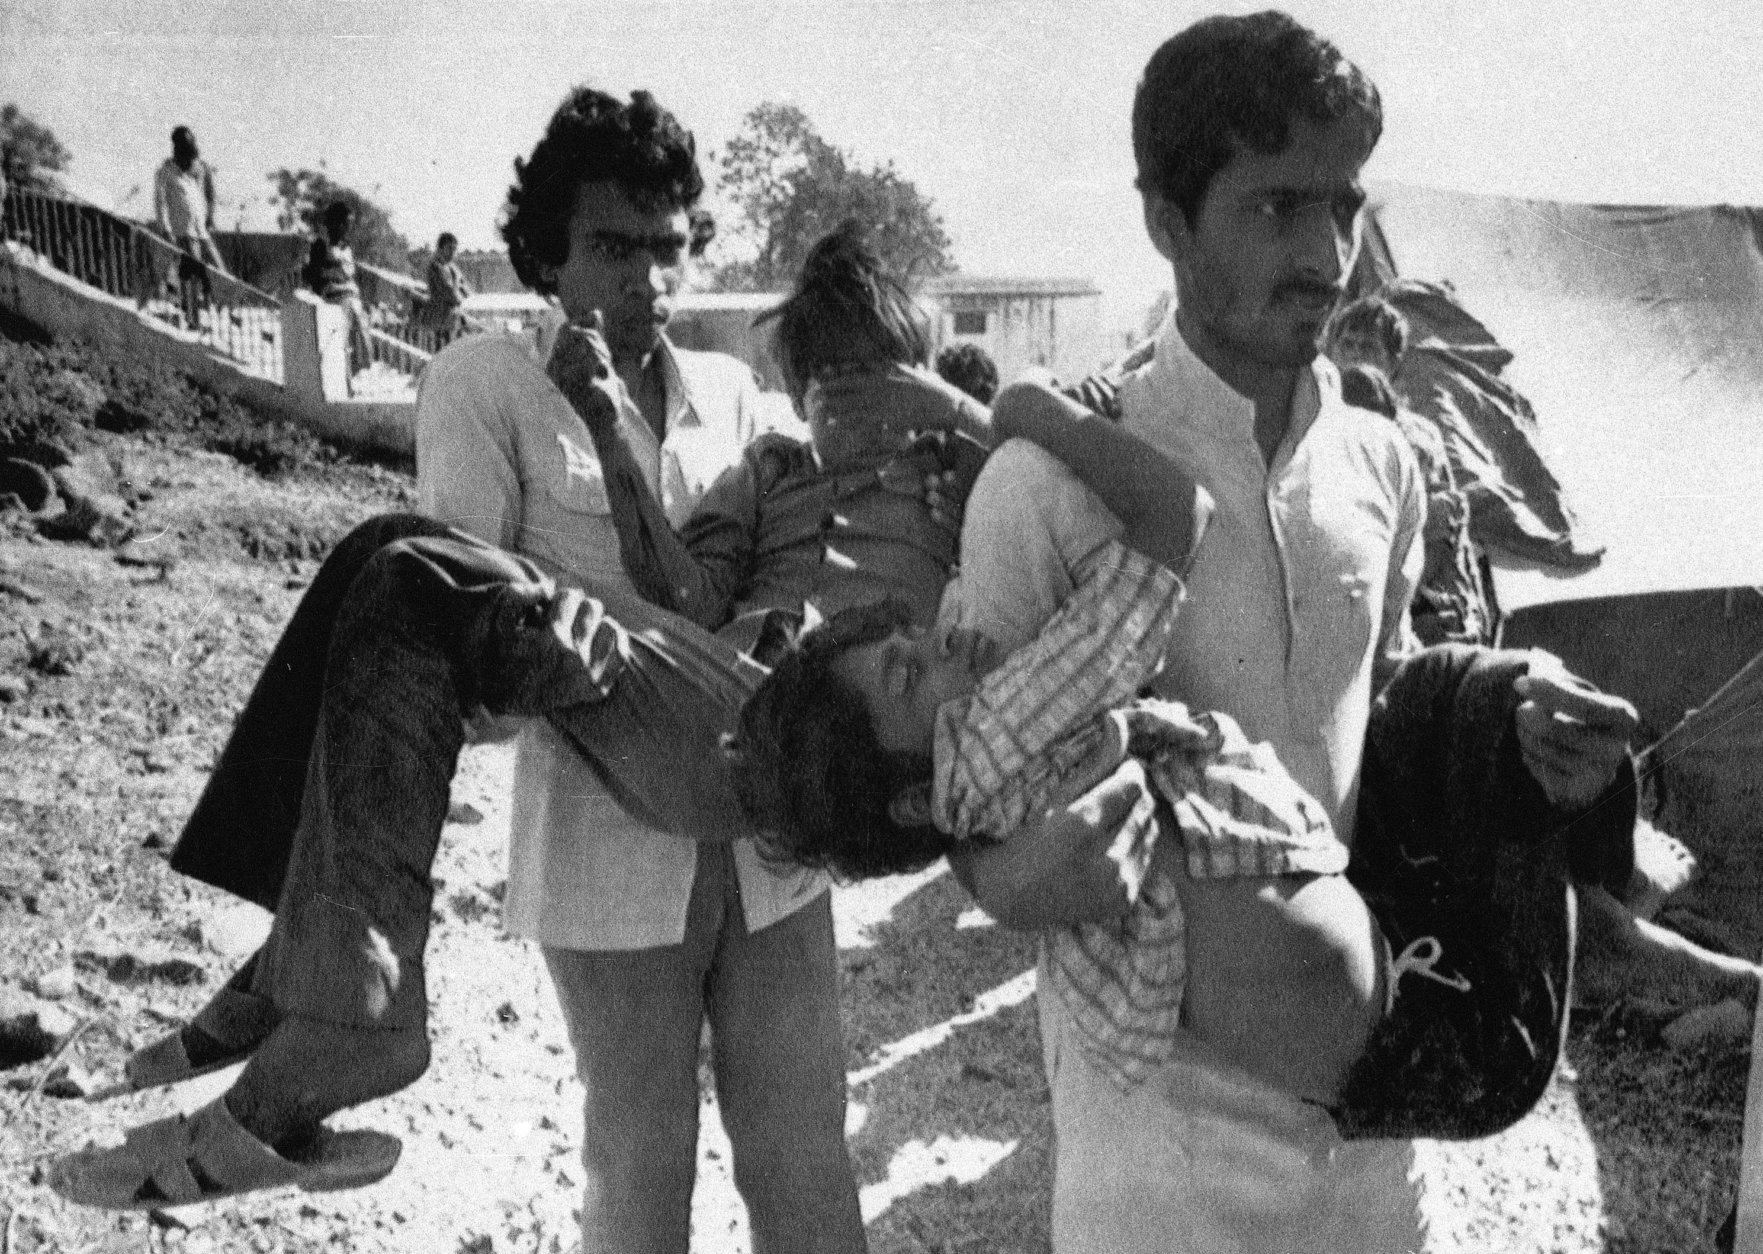 FILE – In this Dec. 5, 1984 file photo, two men carry to a hospital children blinded by the Union Carbide chemical pesticide leak in Bhopal, India. Indians are marking the 30th anniversary of the Bhopal gas leak tragedy with protests demanding harsher punishments for those responsible and more compensation for the victims of the world's worst industrial disaster. On Dec. 3, 1984, the pesticide plant leaked about 40 tons of deadly methyl isocyanate gas into the air, killing an estimated 15,000 people and affecting at least 500,000 more. Michigan-based Dow Chemical Co. took over Union Carbide in 2001. (AP Photo/Sondeep Shankar, File)